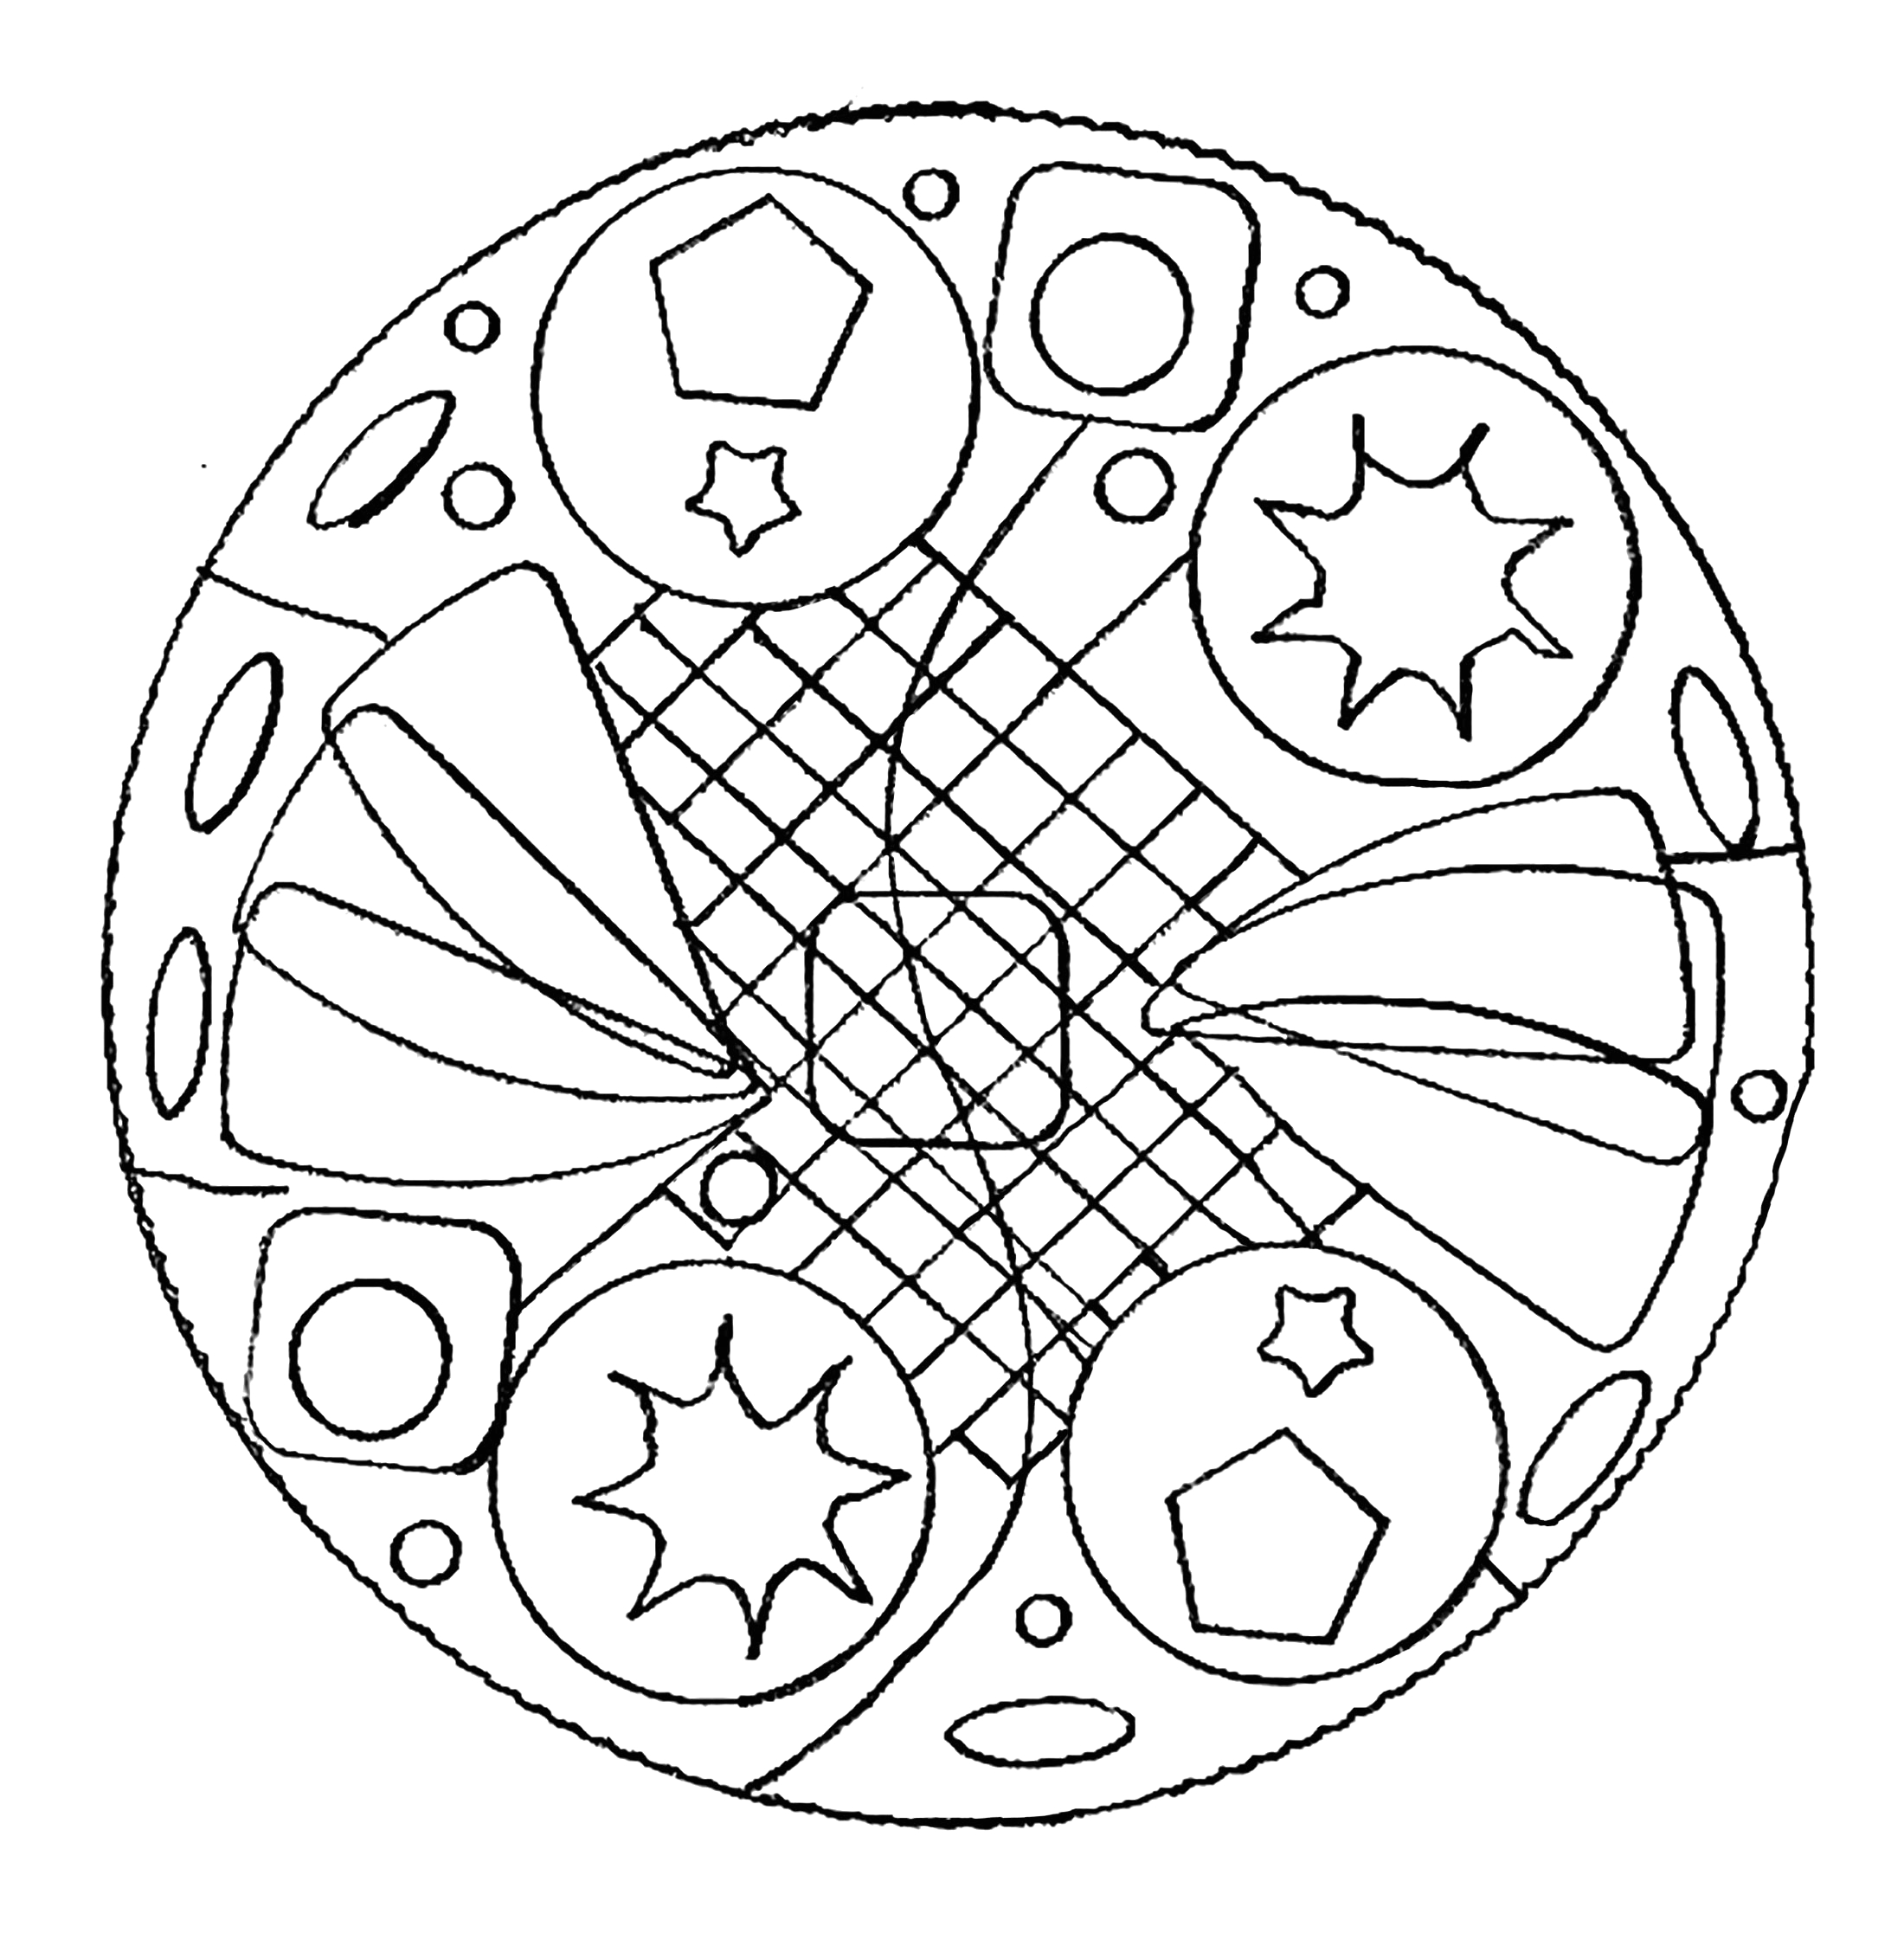 Free Printable Mandala Coloring Pages for Adults Easy Simple Mandalas M&alas Adult Coloring Pages